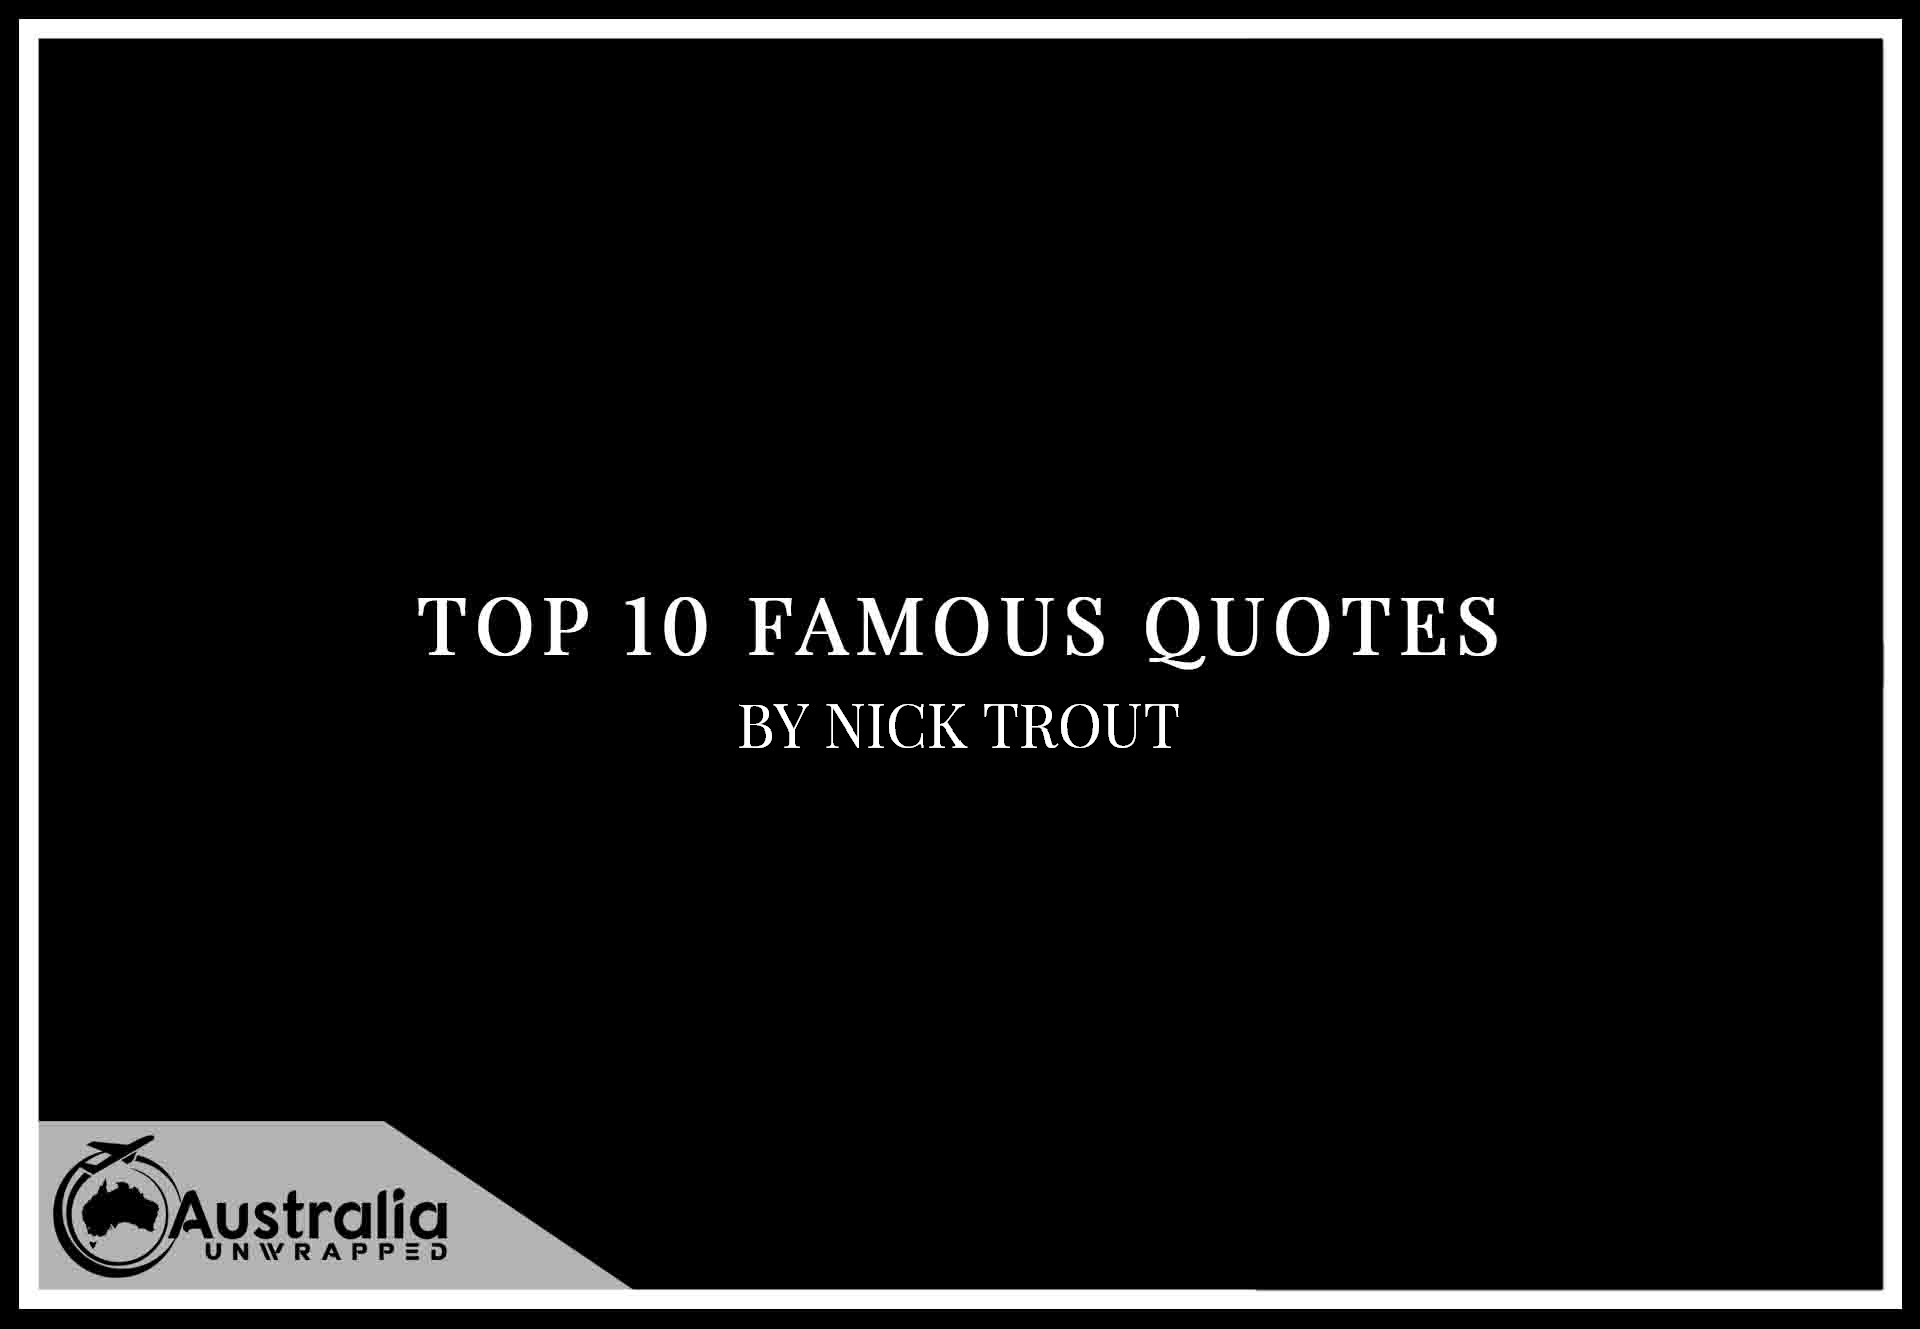 Top 10 Famous Quotes by Author Nick Trout